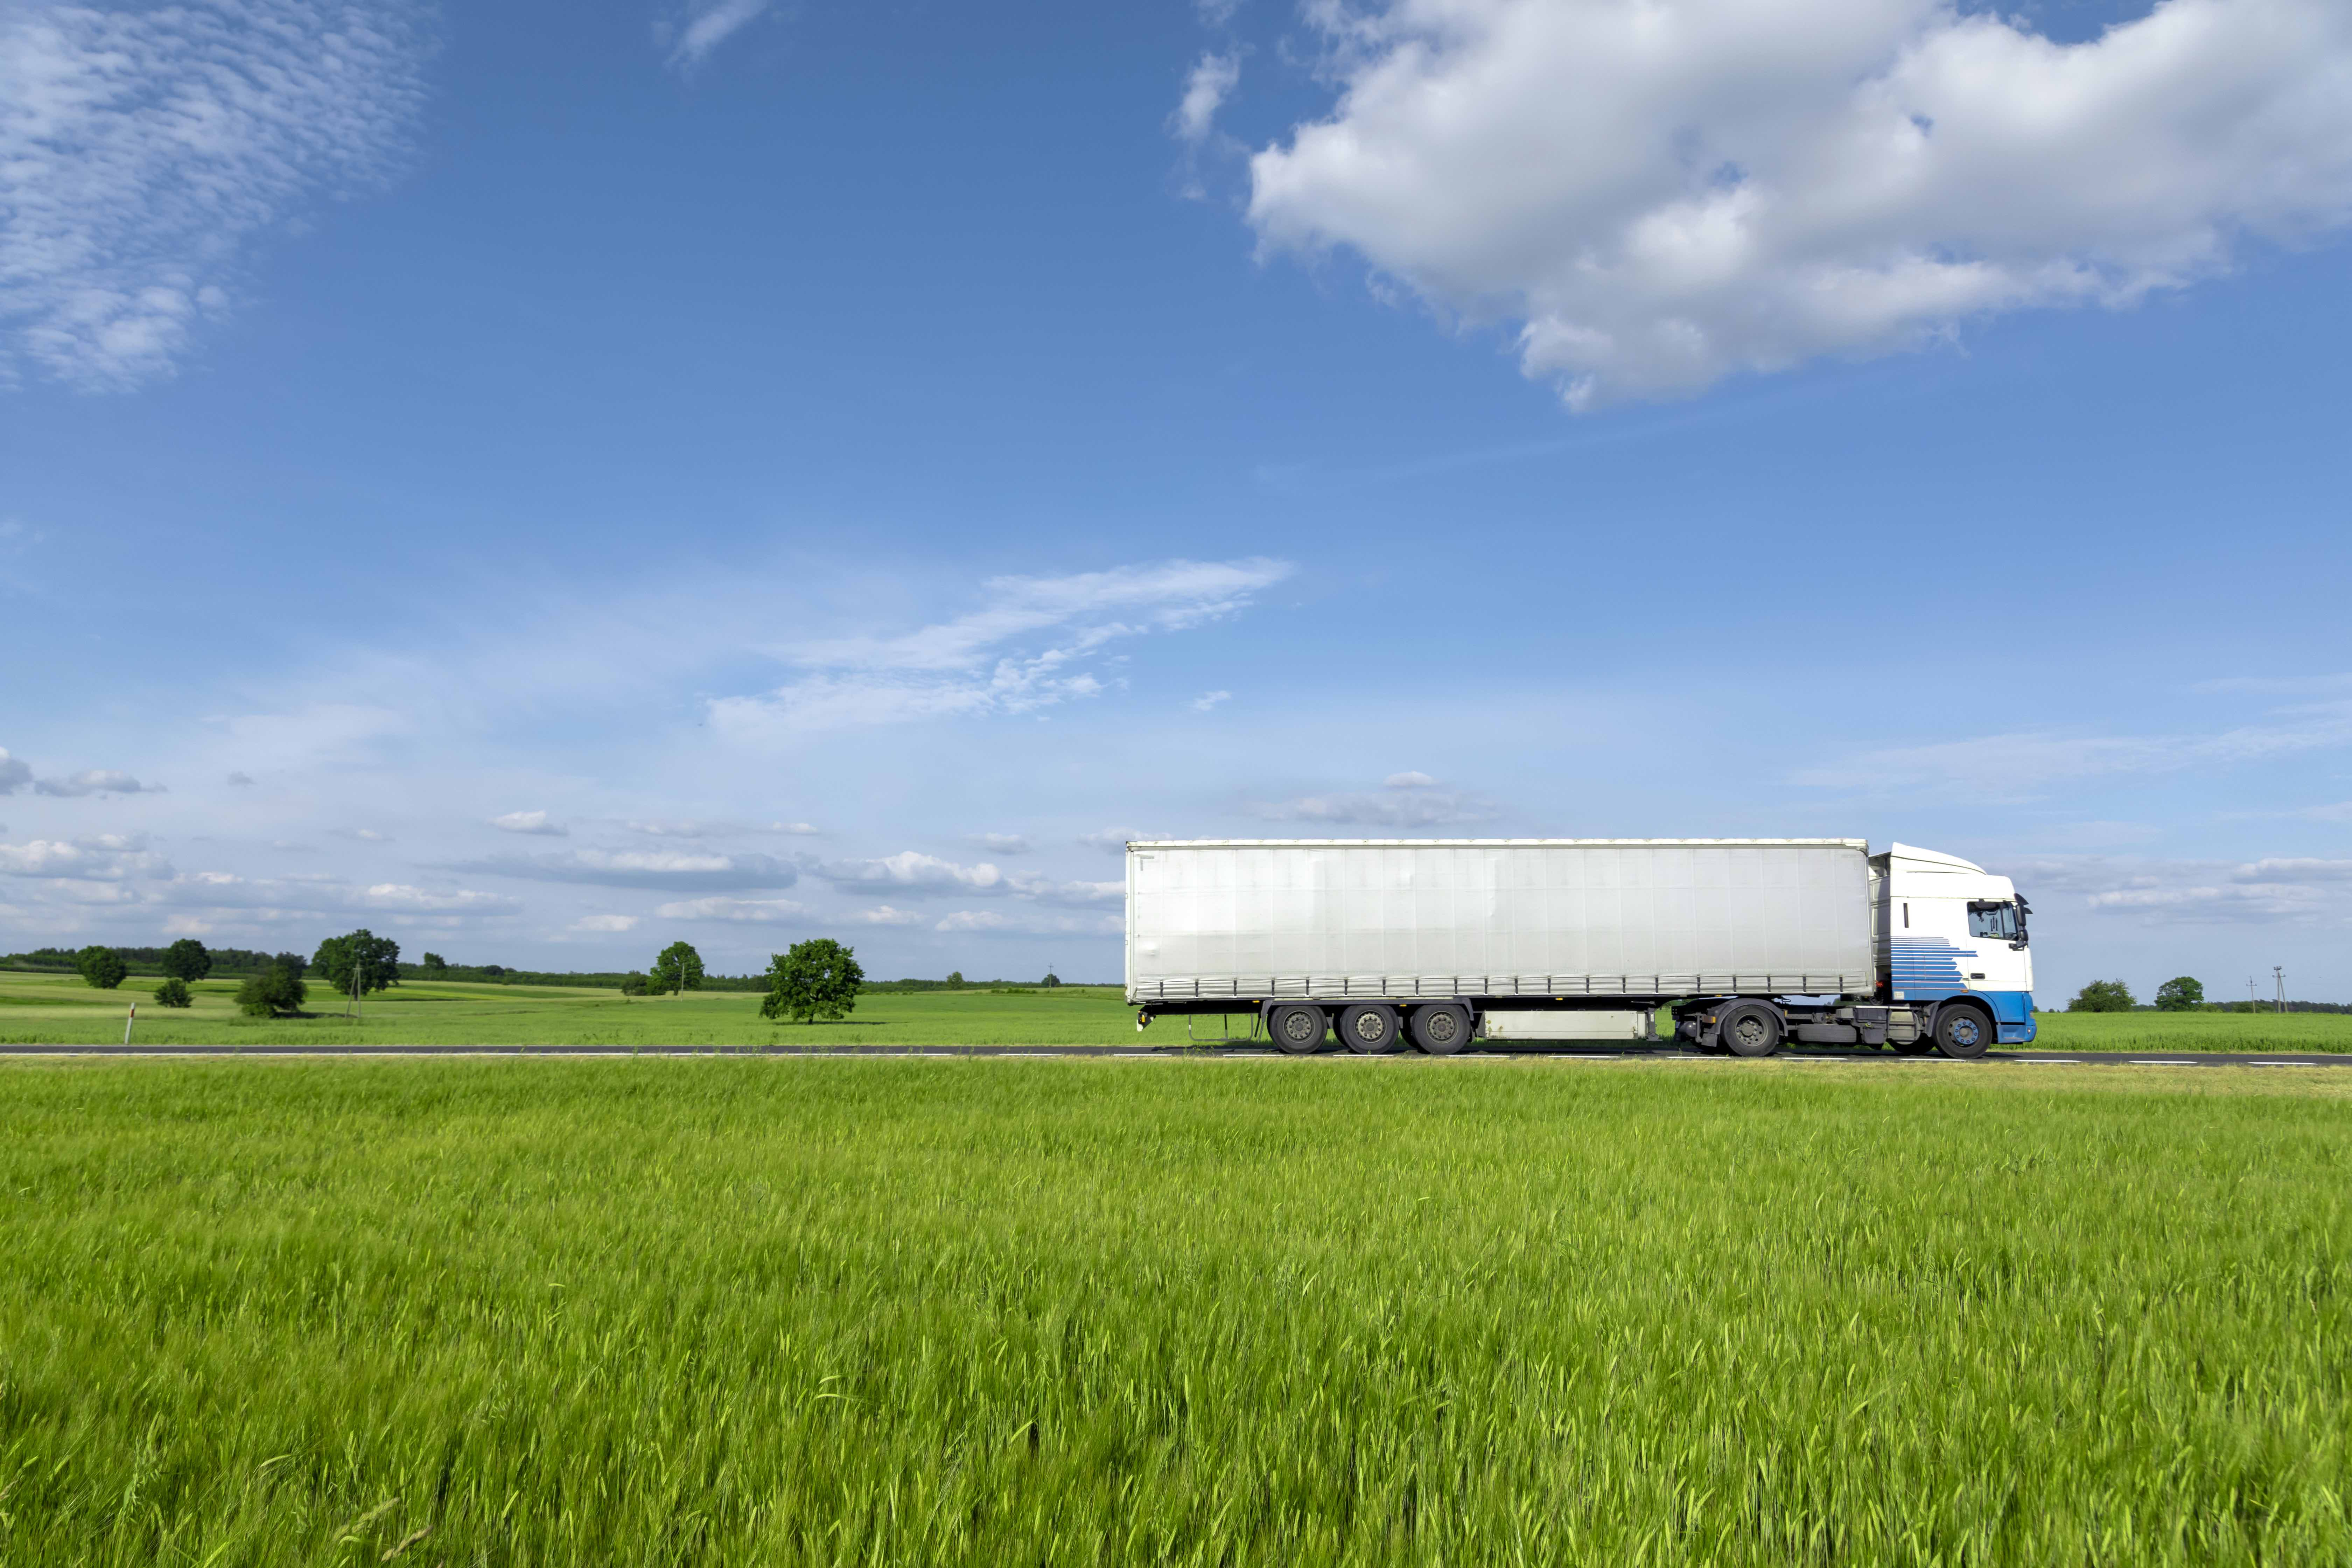 a truck delivering bread nationwide in the USA